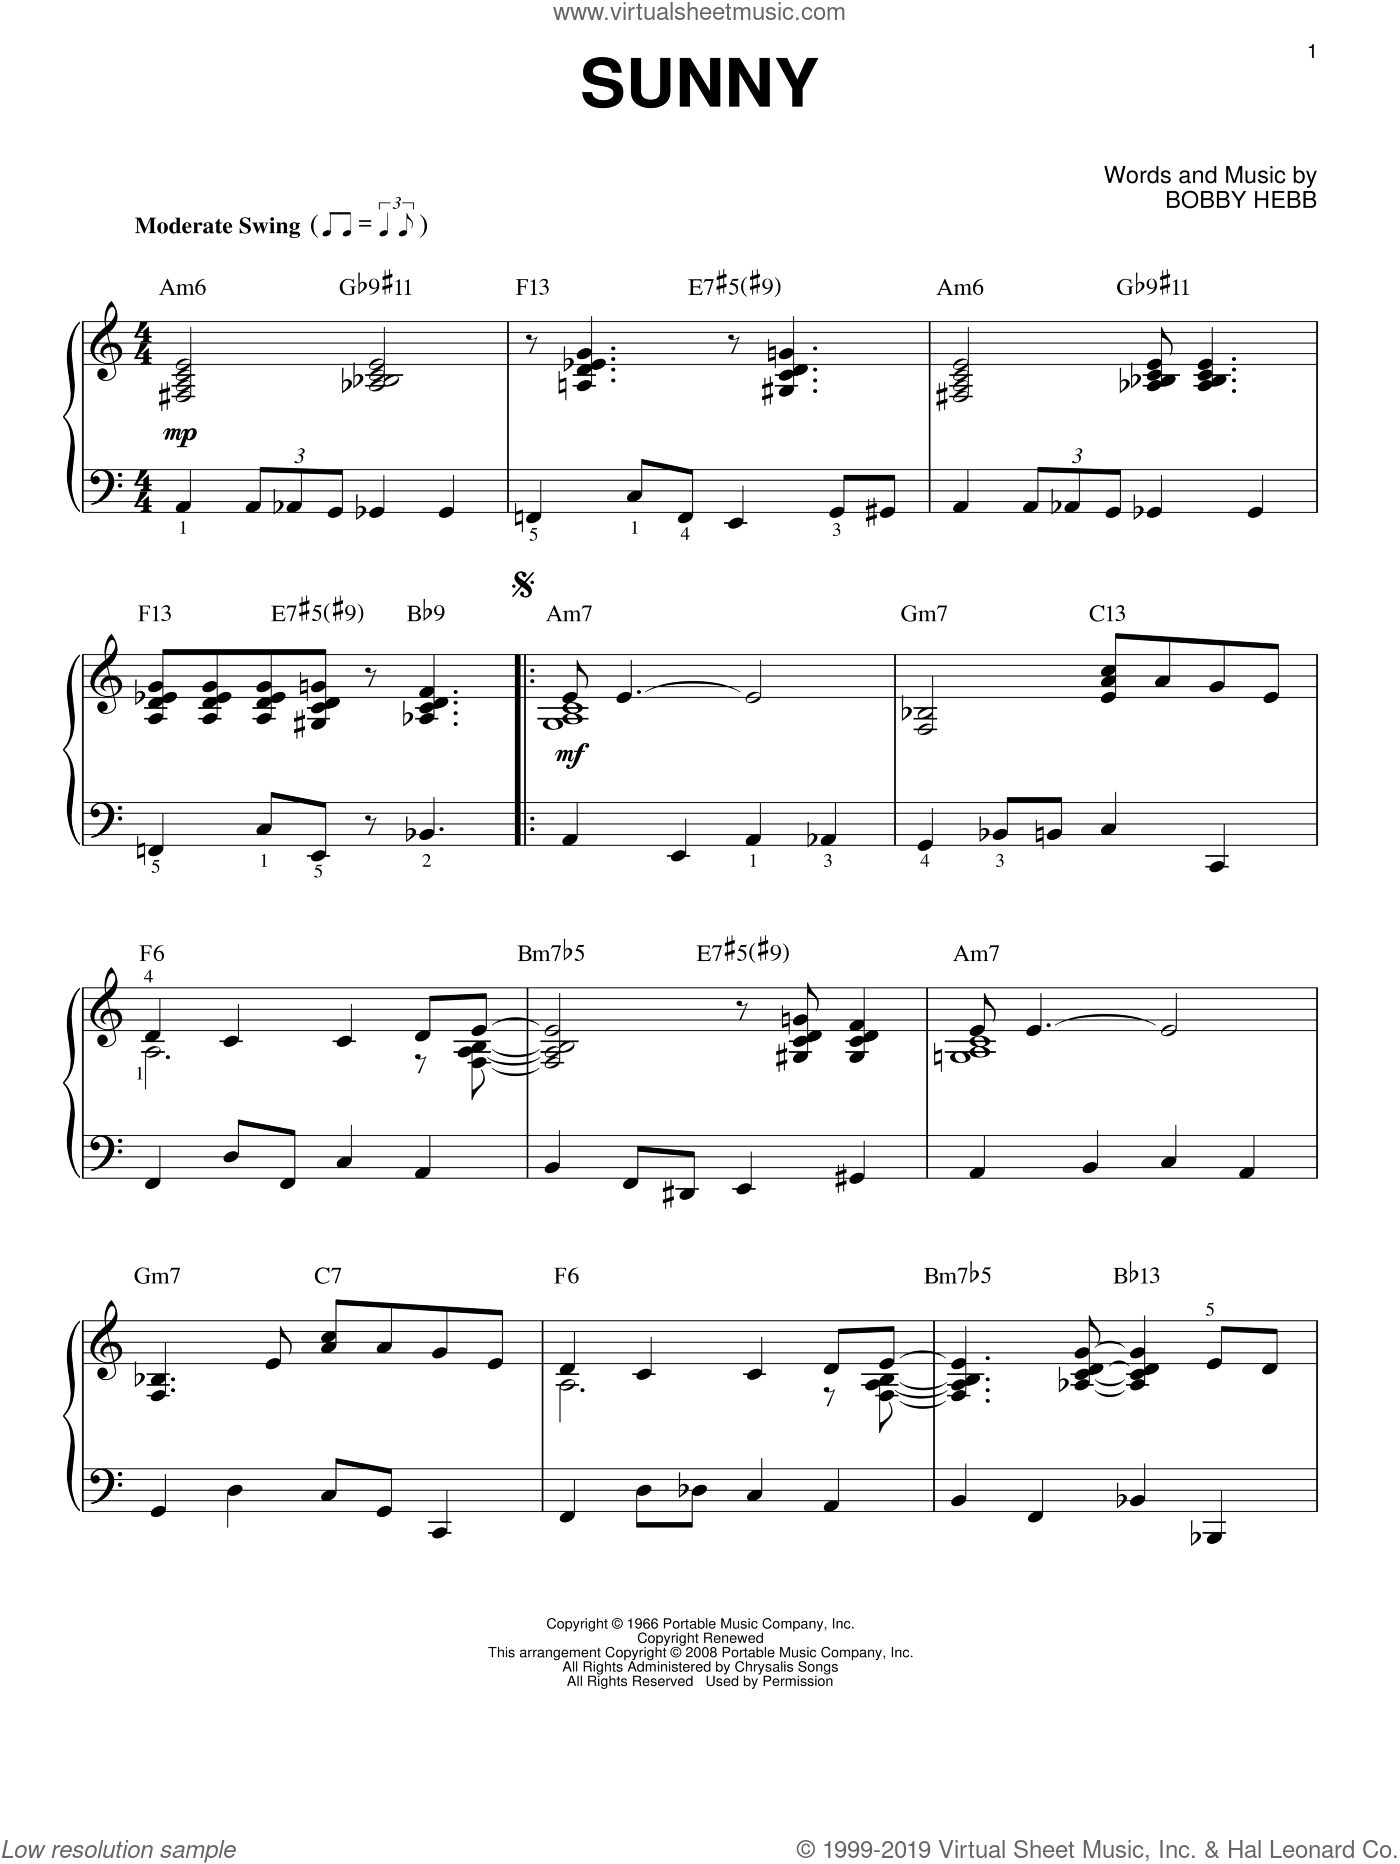 Sunny sheet music for piano solo by Bobby Hebb